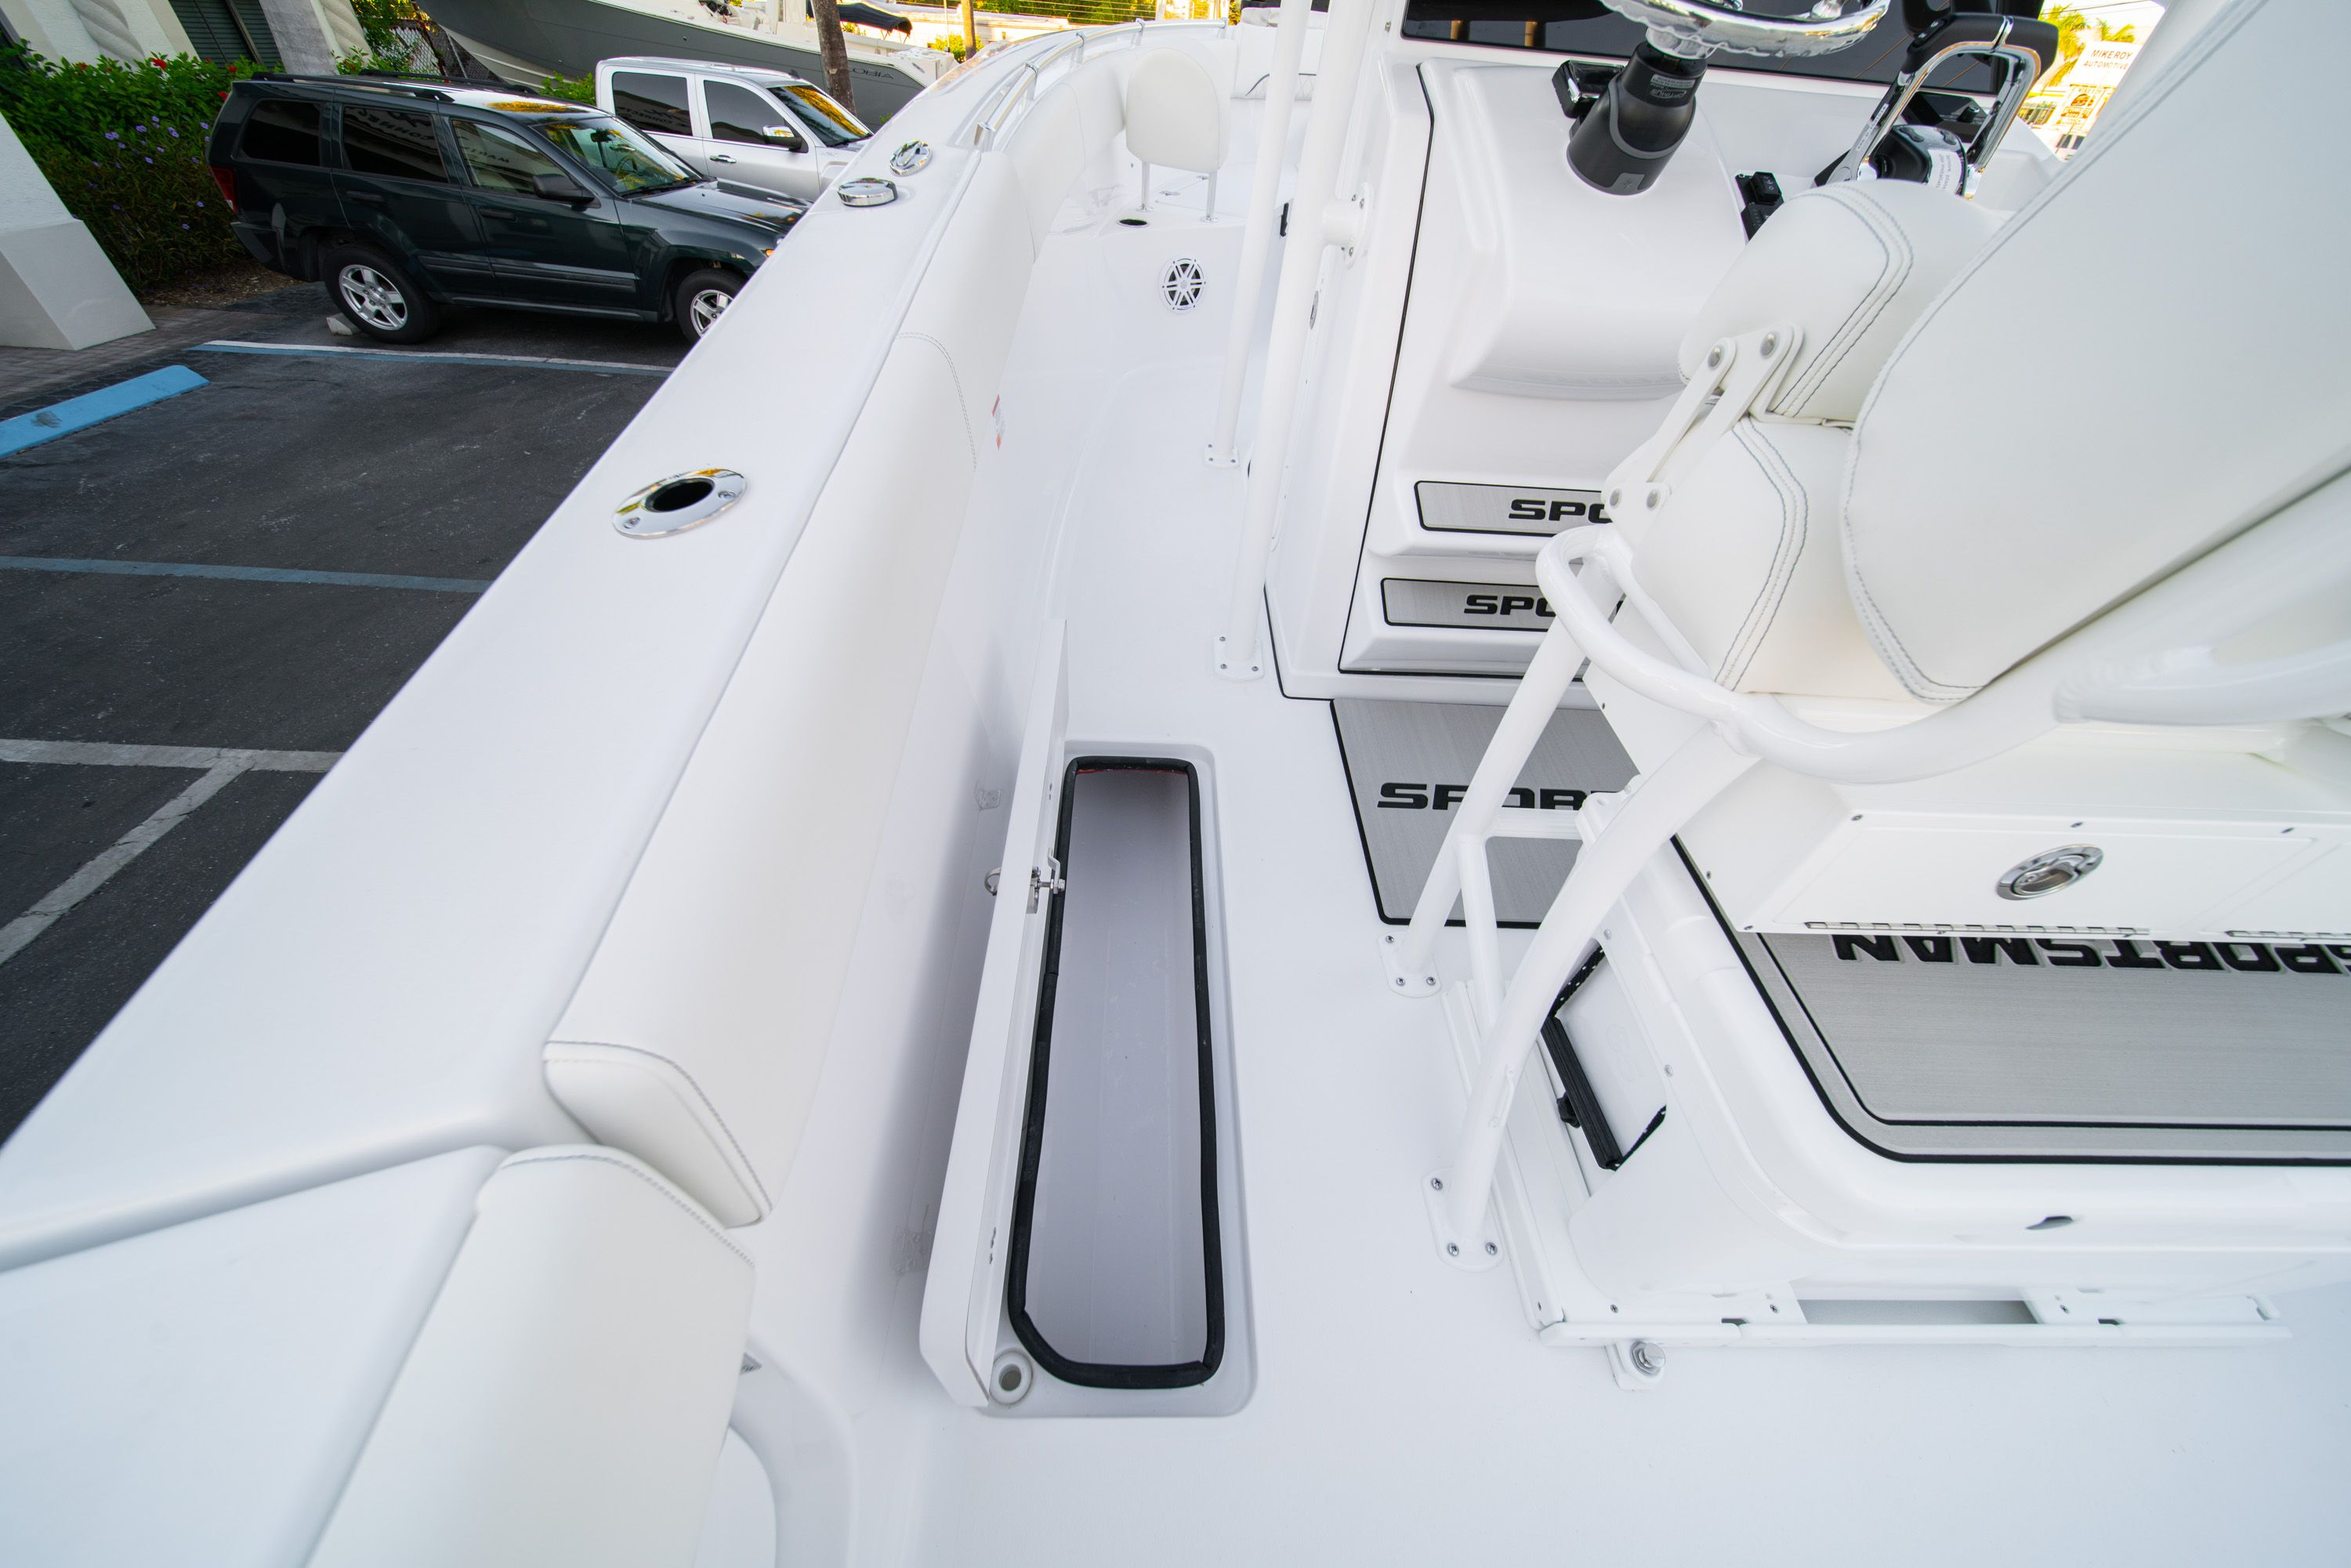 Thumbnail 29 for New 2020 Sportsman Open 252 Center Console boat for sale in West Palm Beach, FL